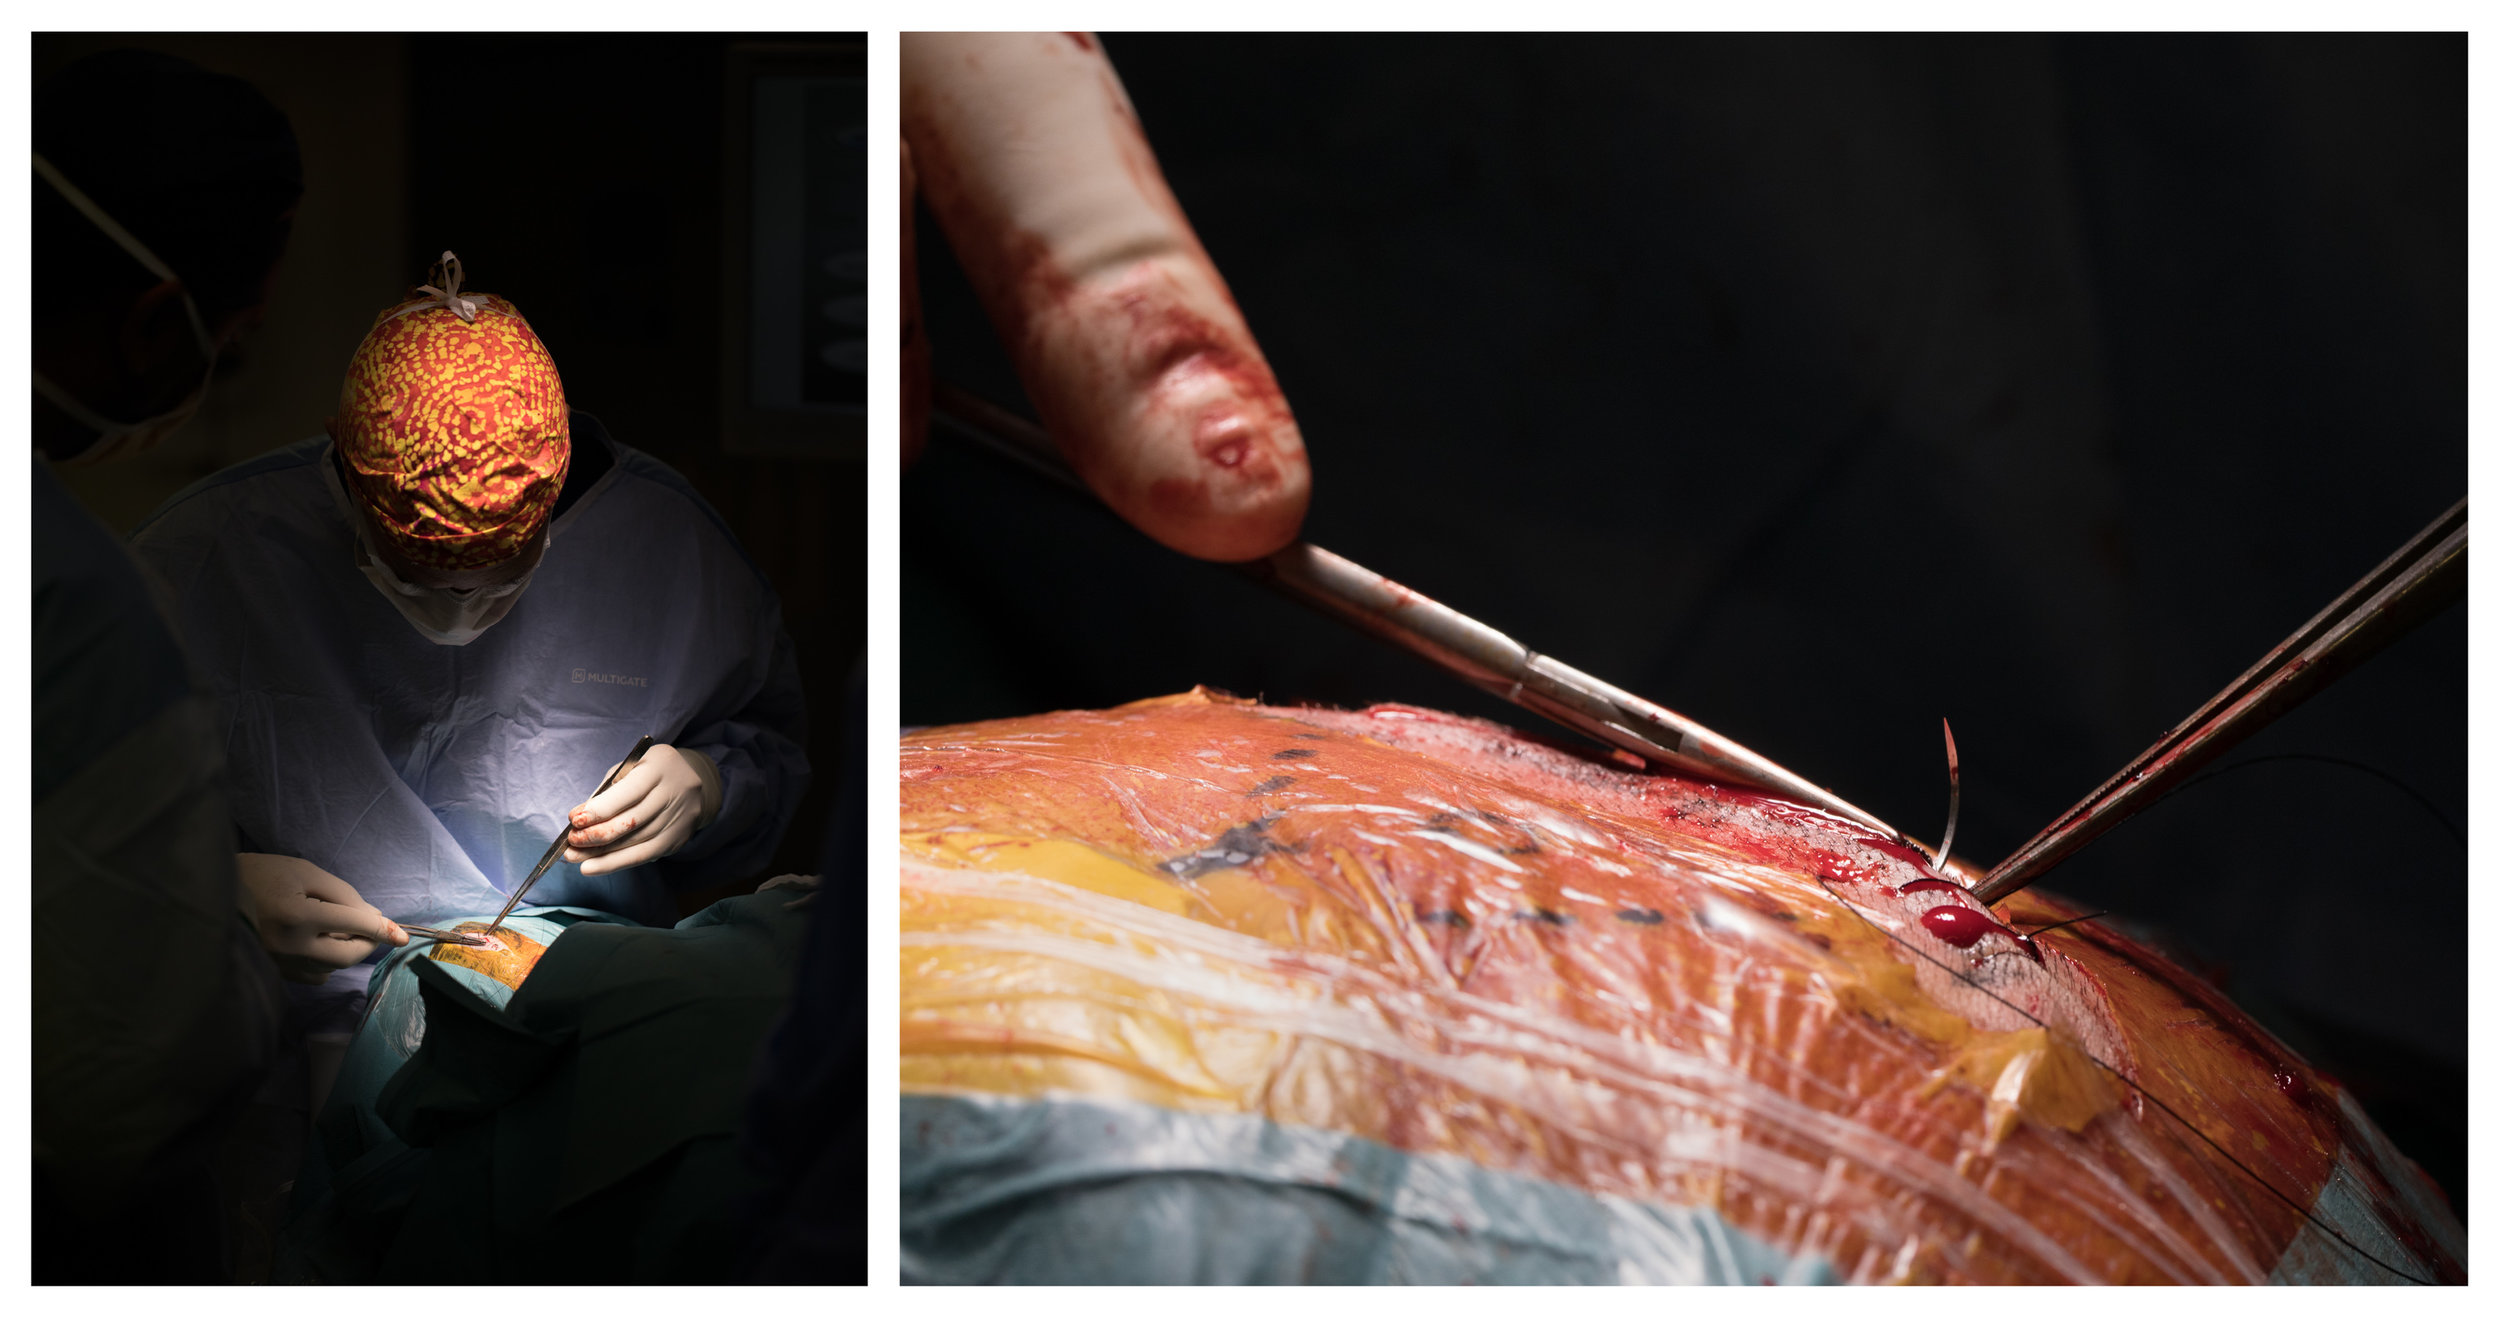 After removing a cyst from the brain, world renown neurosurgeon, Dr Charlie Teo stitches each layer of flesh together with as much skill and care as he used to make the first incisions 2 hours prior.